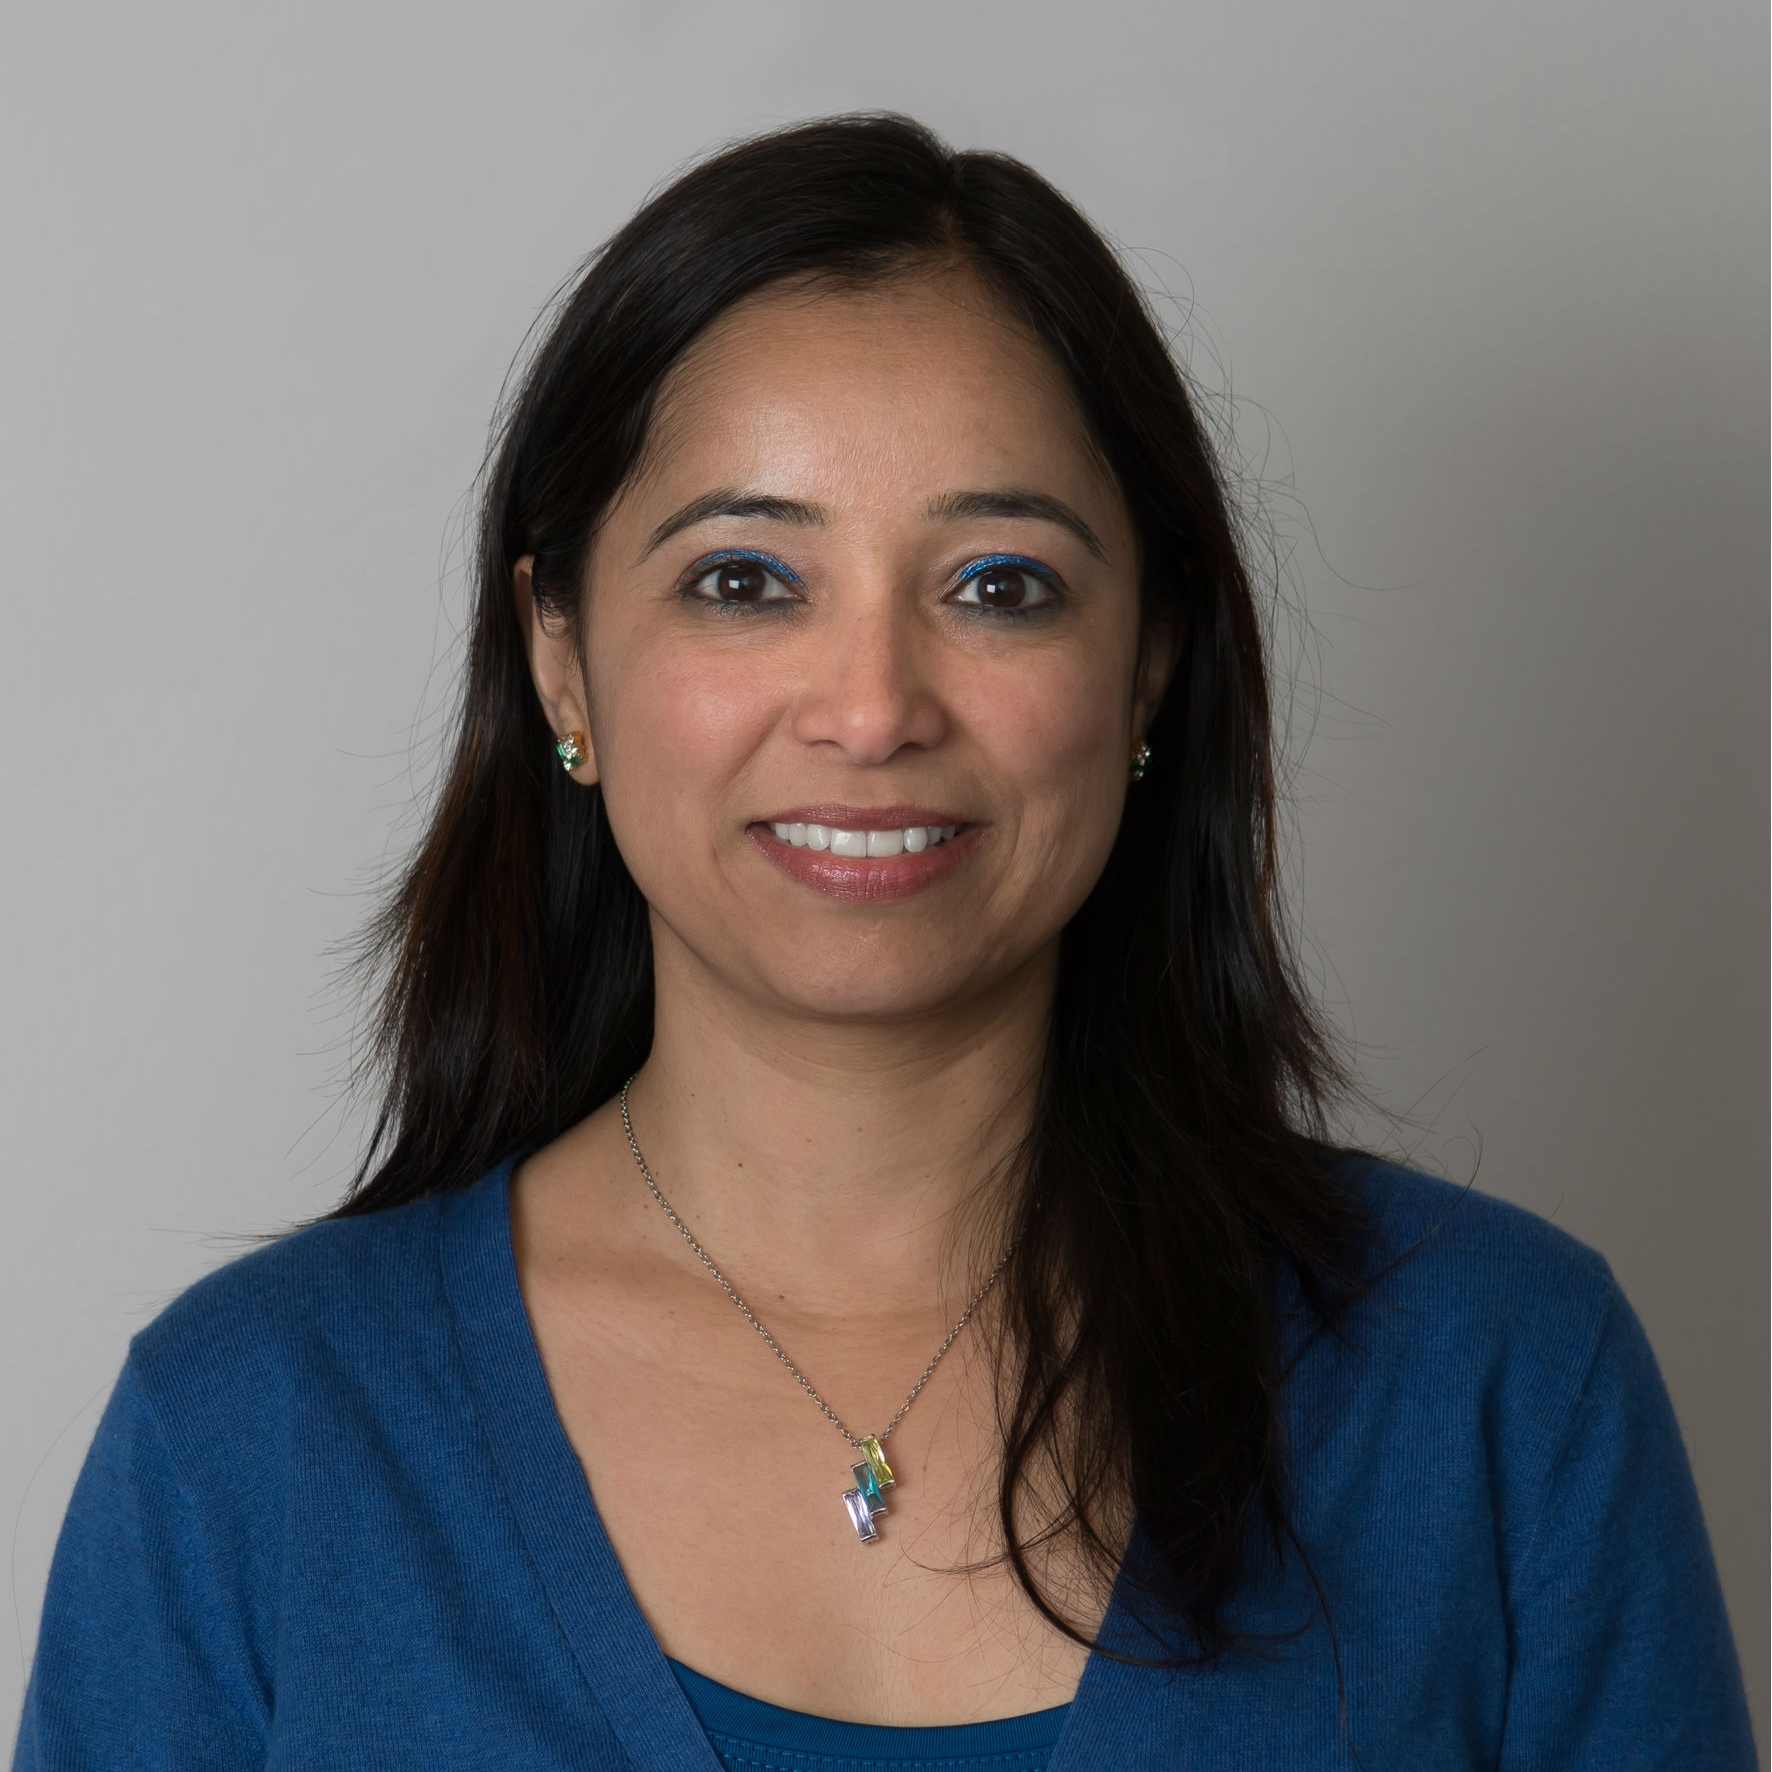 Gauri Trivedi - Billing Managergauri@medconnectpro.com(503) 922-2160 ext. 311(503) 922-2161 (direct)